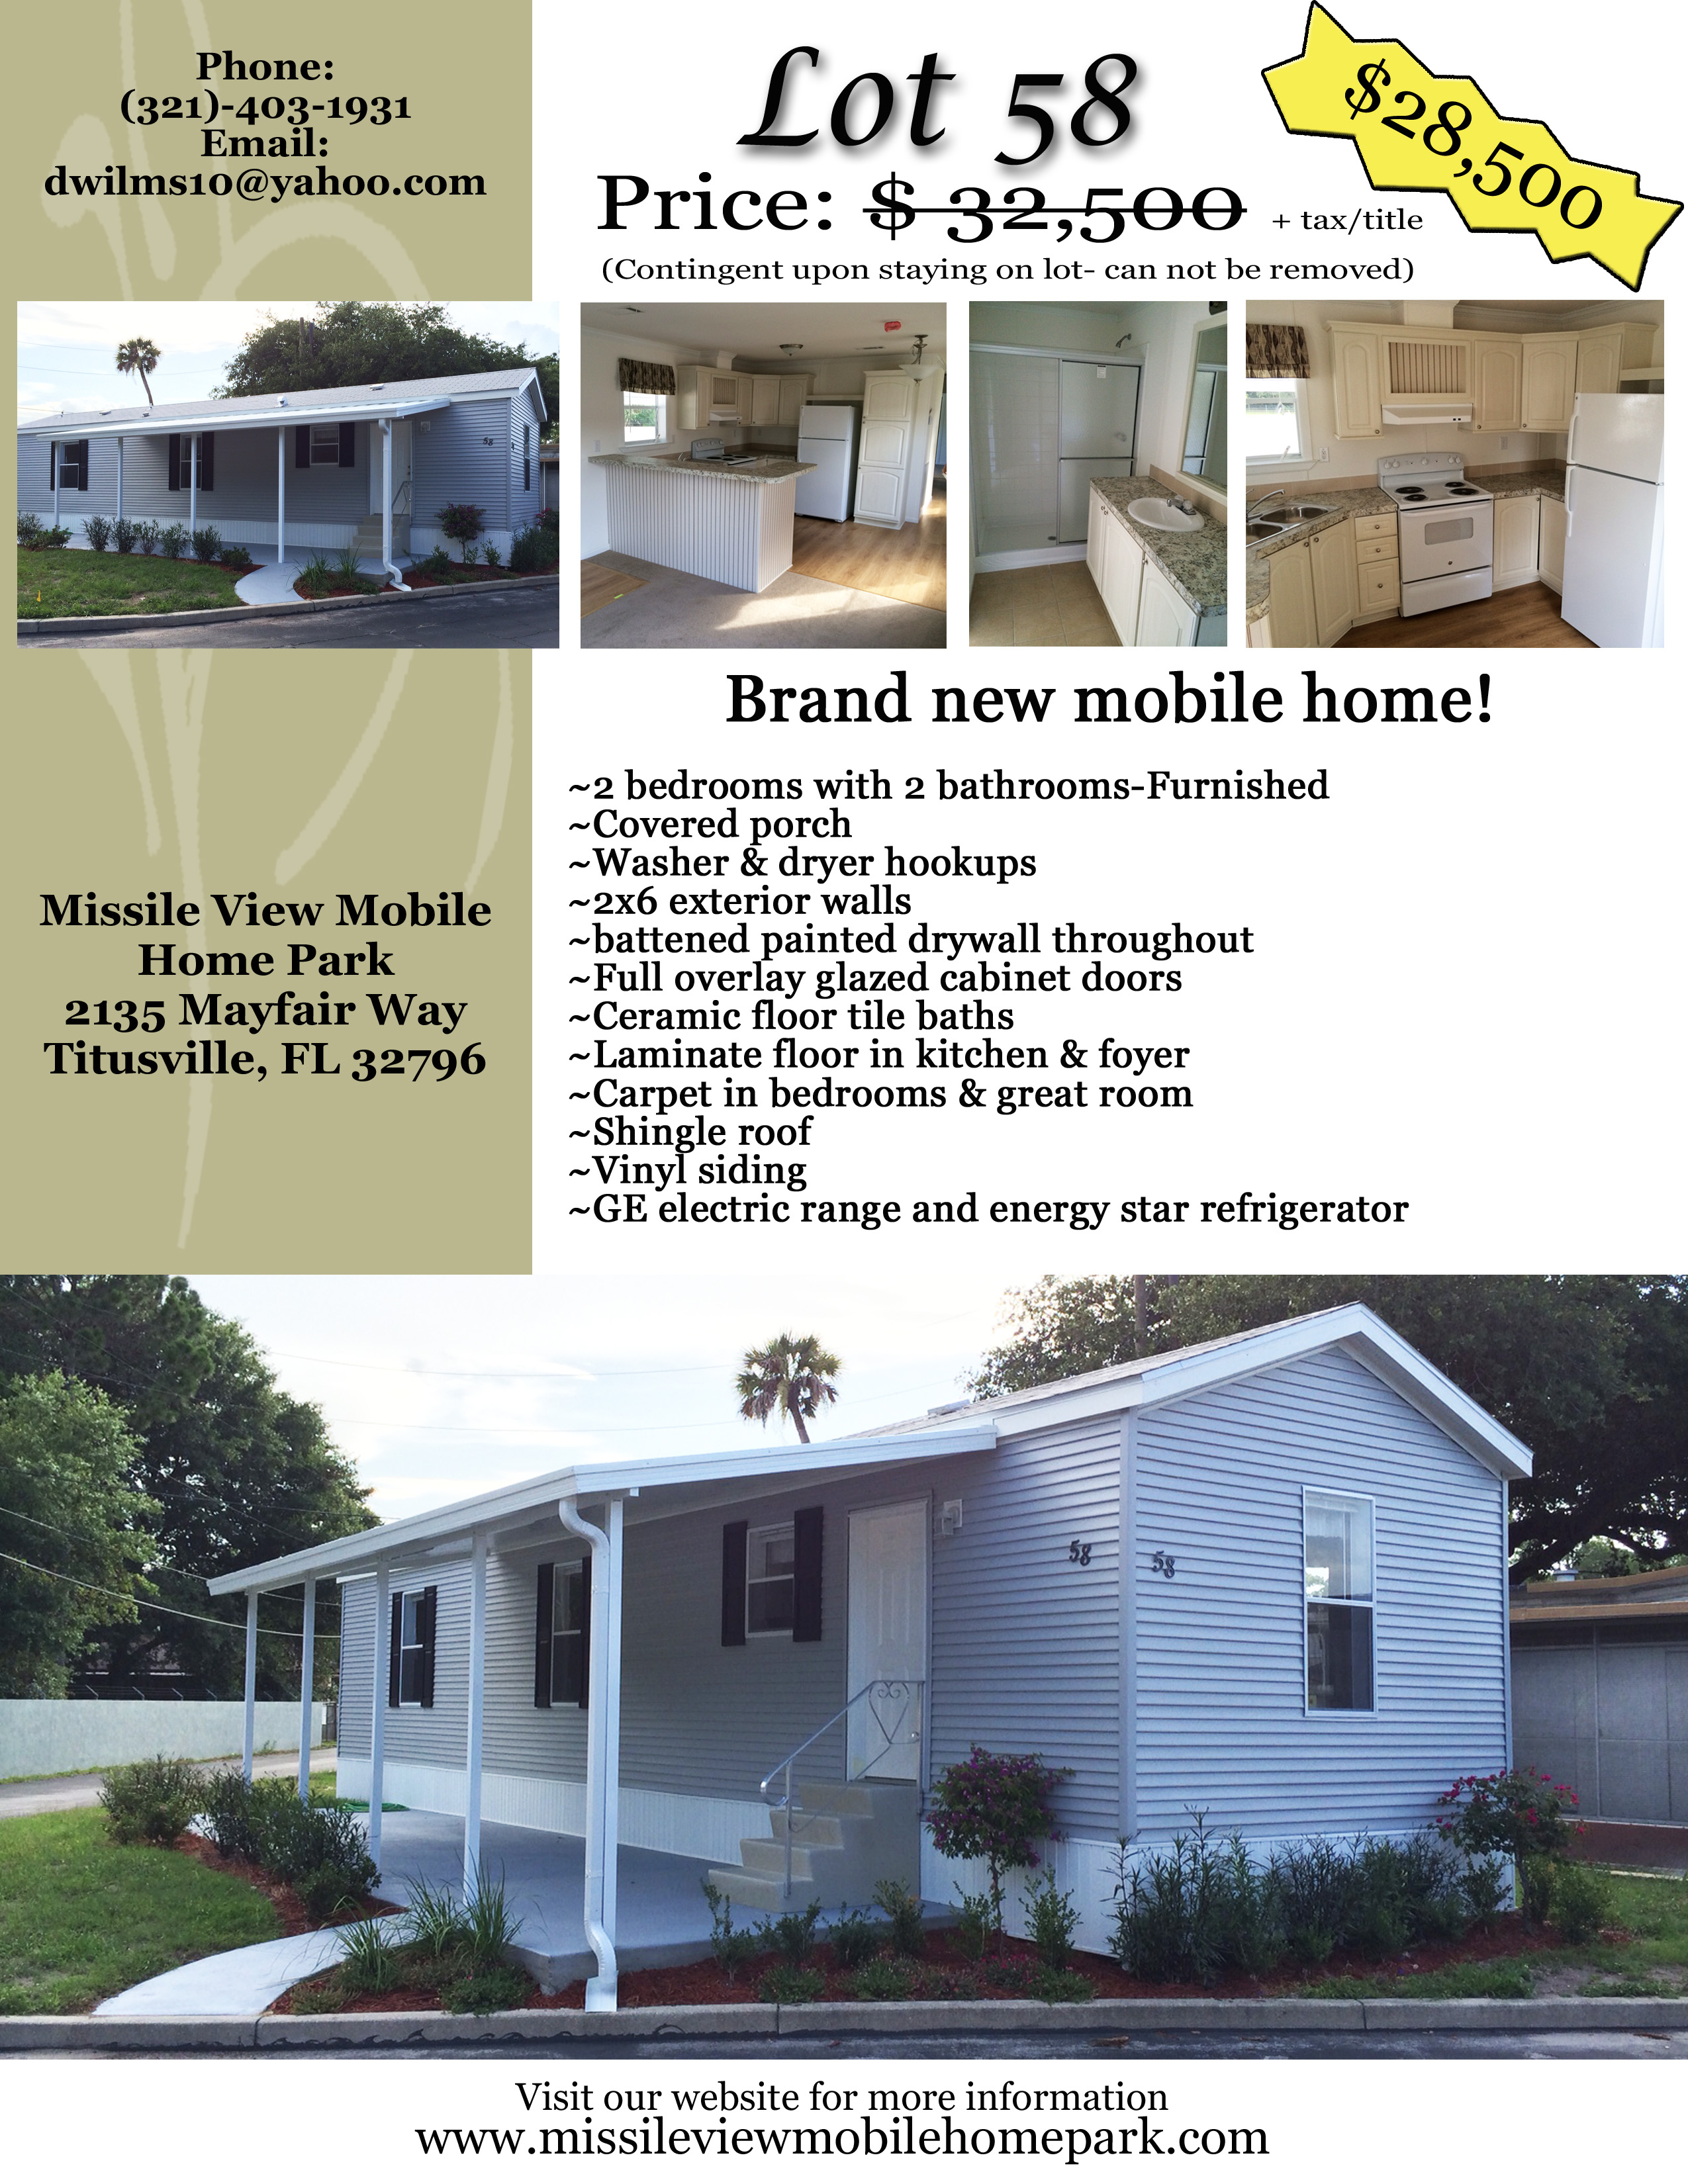 Missile View Mobile Home Park | usville, FL on mobile homes double-doors, plans for manufactured homes sale, mobile home stairs, mobile home canopies, mobile home sunken living room, mobile home back door, mobile home sales florida, mobile home screen door hinges, mobile home door suppliers, home depot storm doors sale, mobile home kitchen makeovers, mobile home curtains,